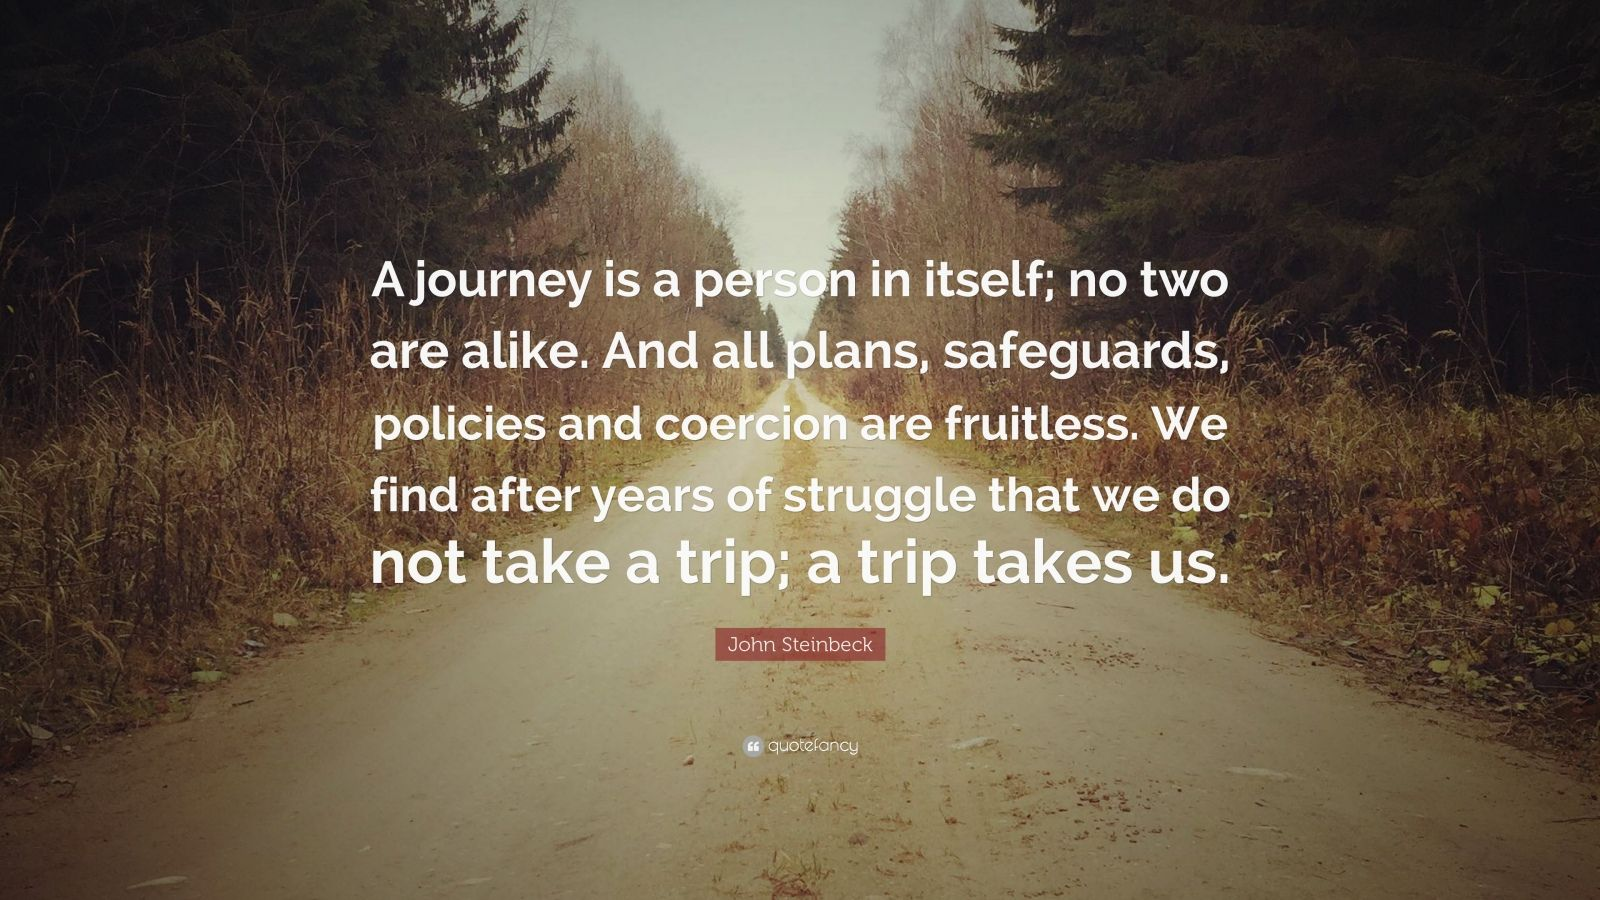 Mission Trip Quote Wallpaper John Steinbeck Quote A Journey Is A Person In Itself No